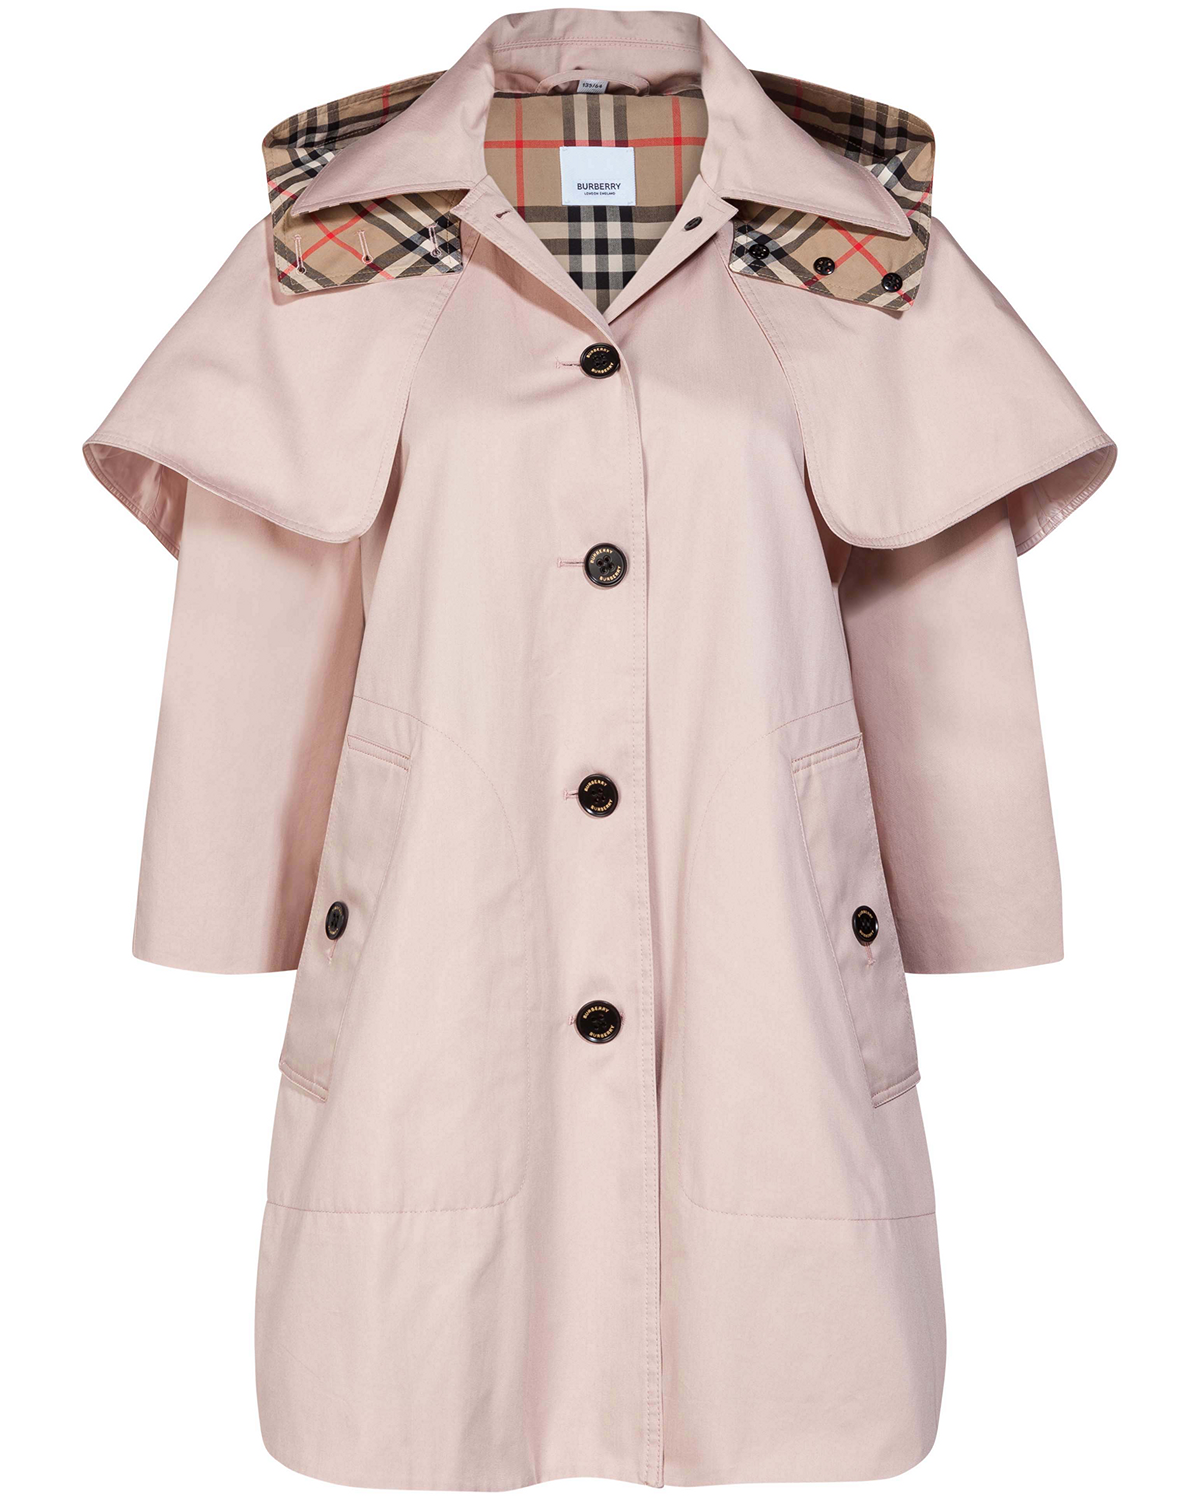 12089e39a Smallsliderpics. Smallsliderpics. Smallsliderpics. Smallsliderpics.  Smallsliderpics. prev. next. Burberry Bethel Mädchen-Trenchcoat ...